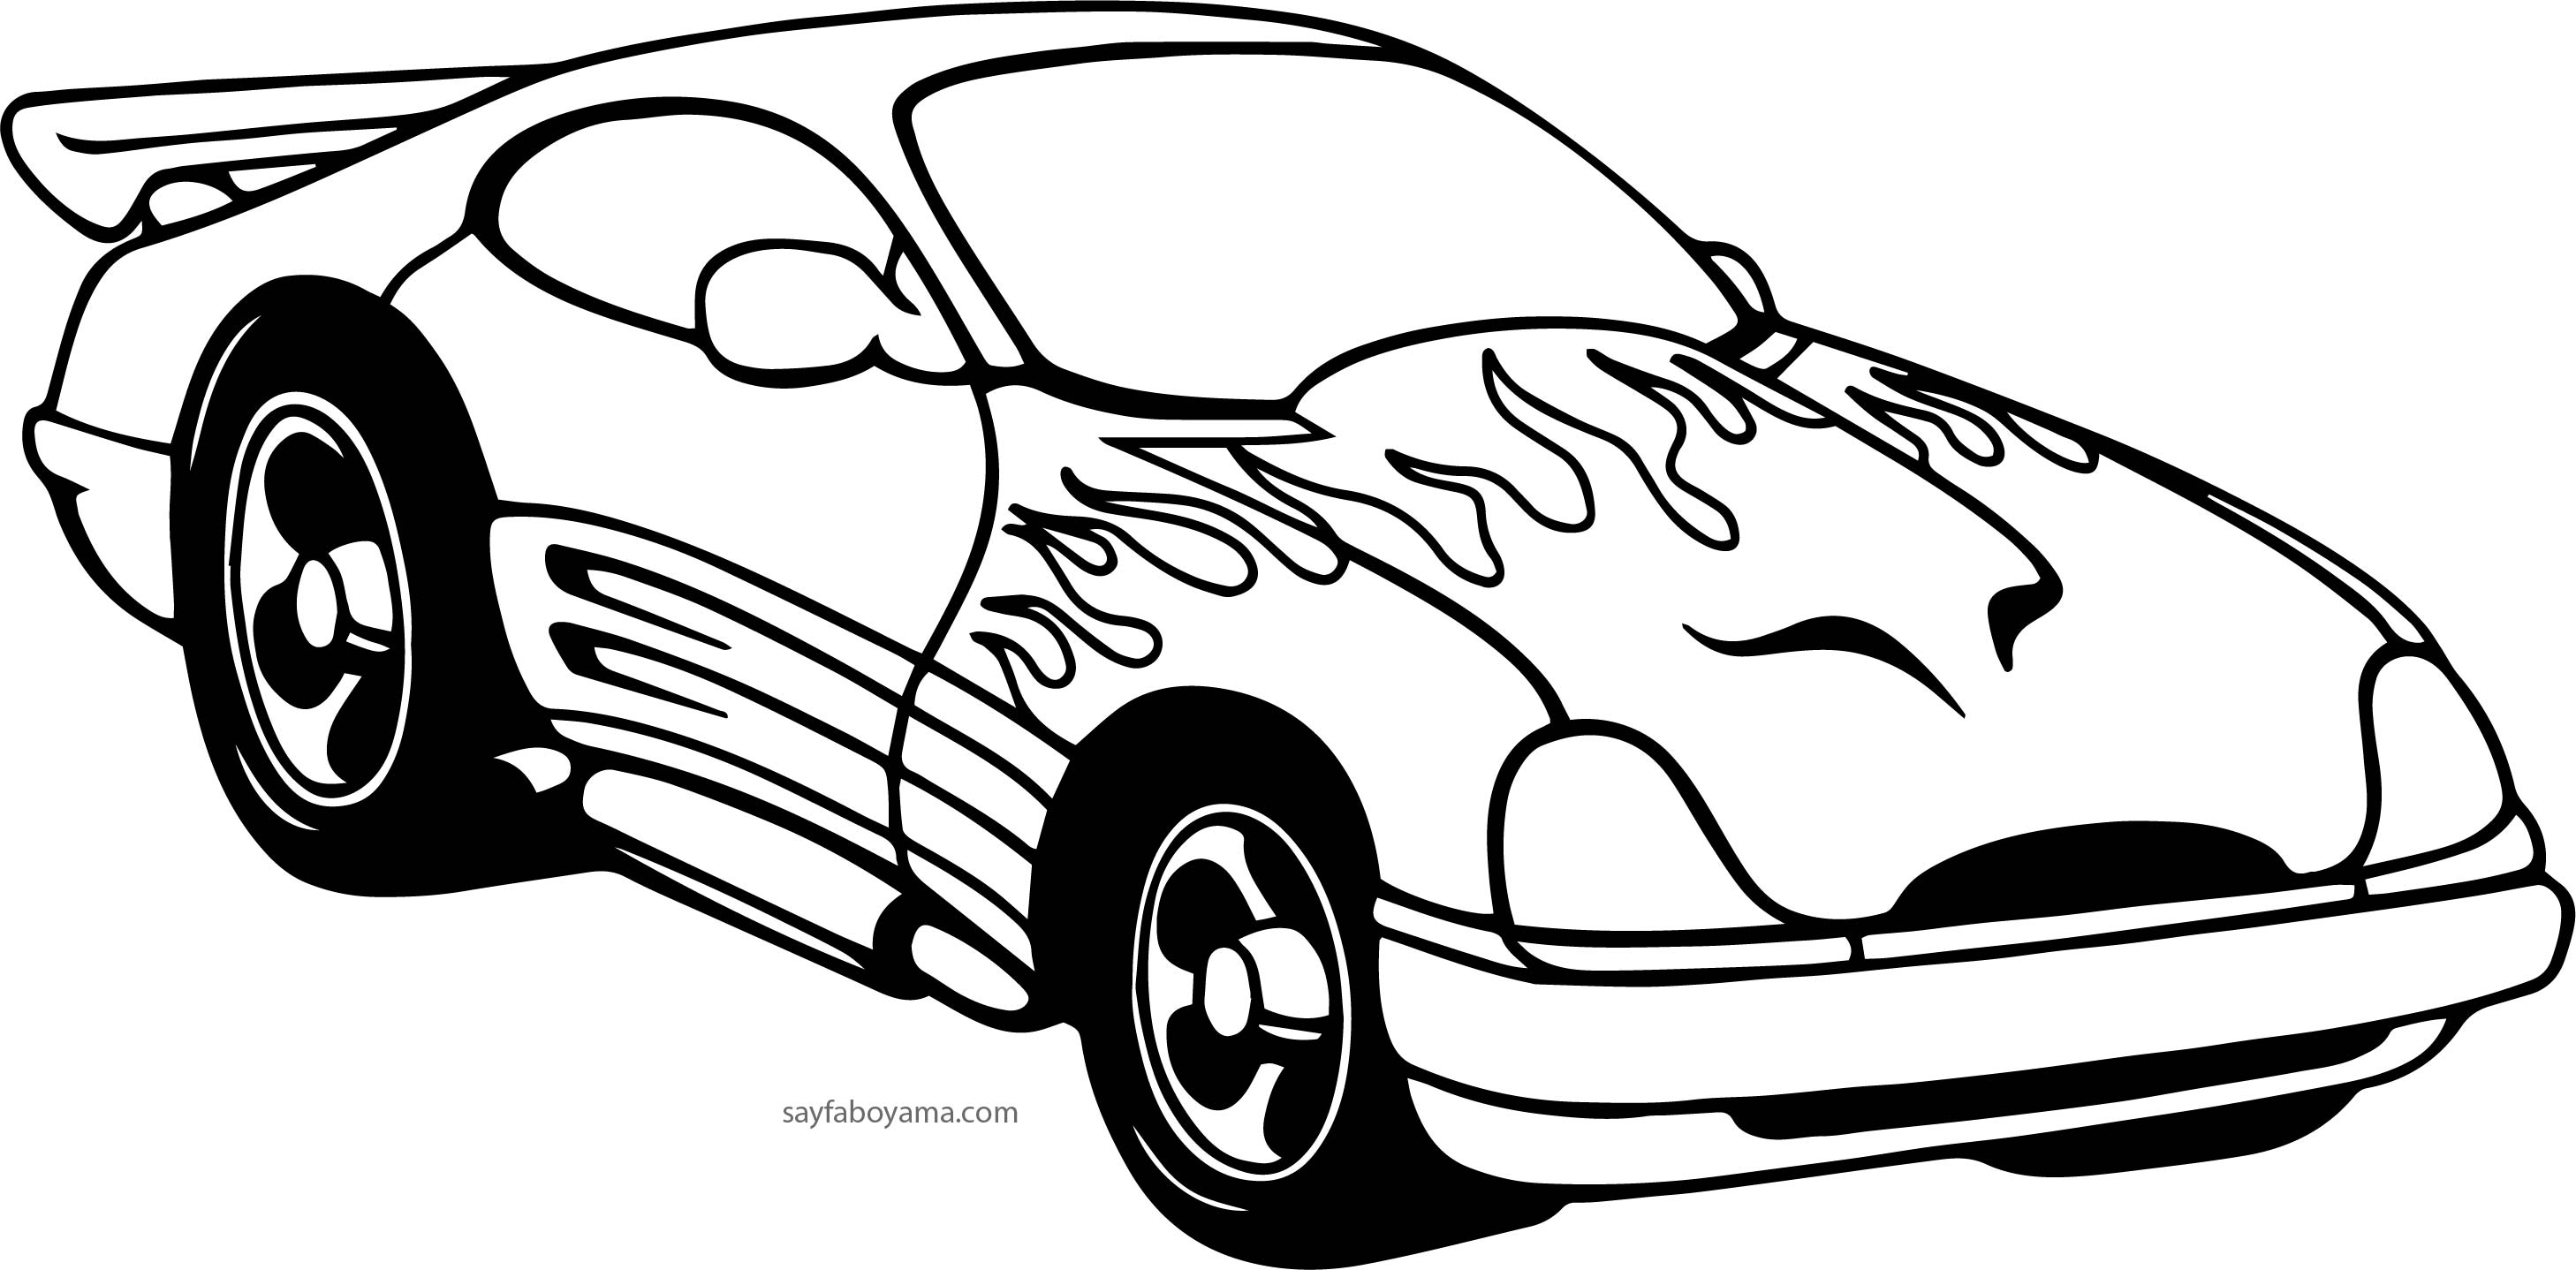 24 Ferrari Coloring Pages Compilation Free Coloring Pages